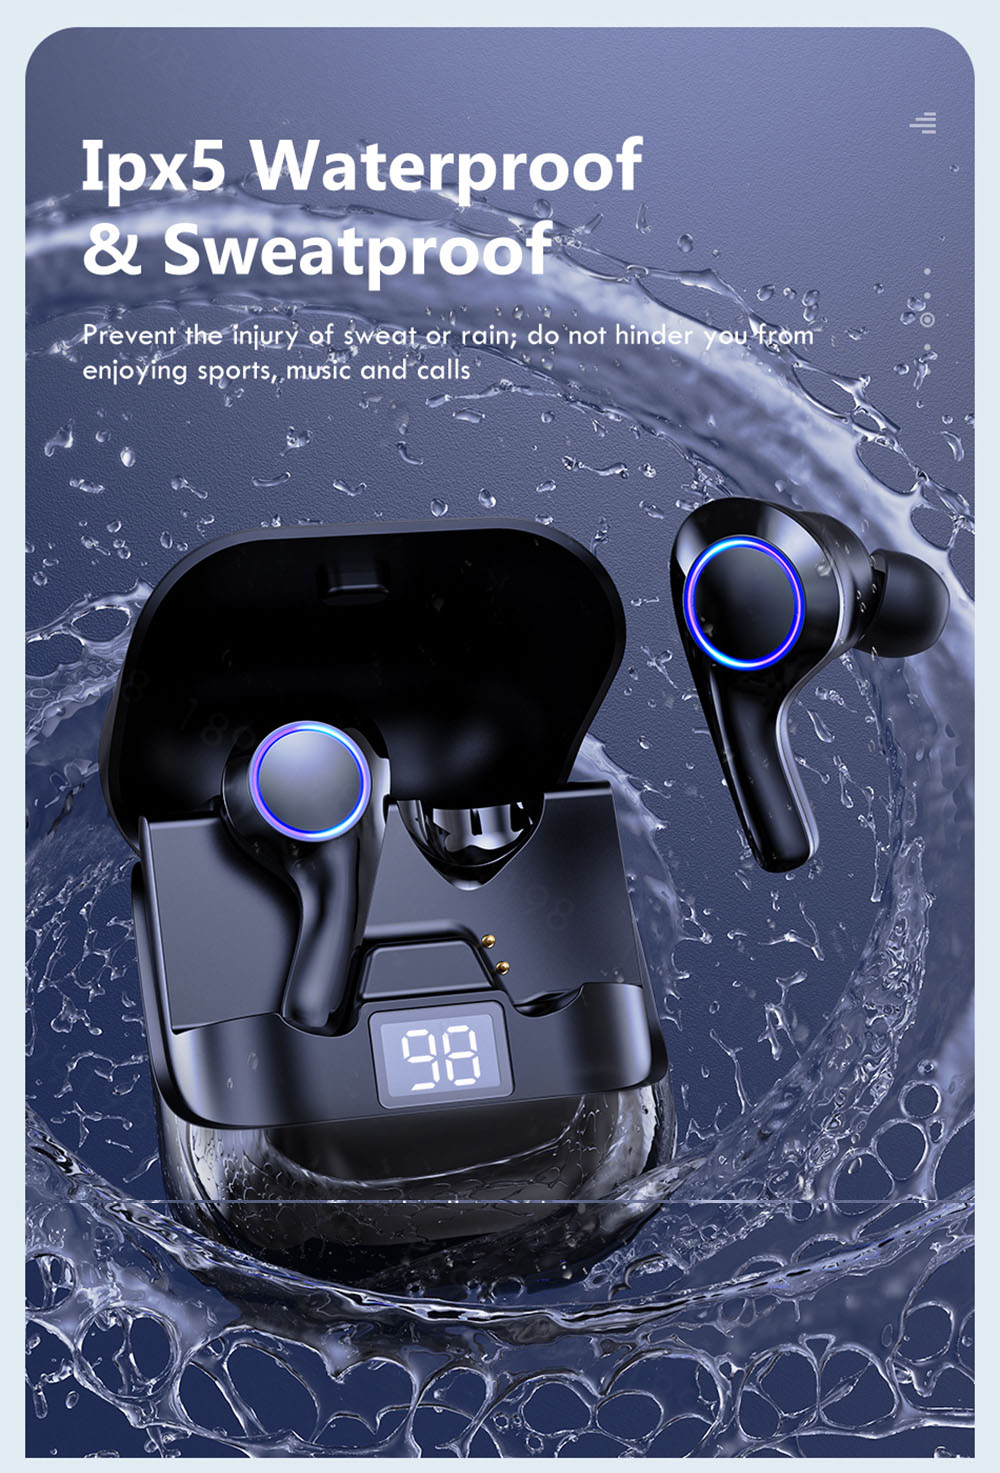 PT08 Bluetooth Earphones Wireless Bluetooth Headset Sports Waterproof Music TWS Audio LED Display Touch Control Microphone - Black